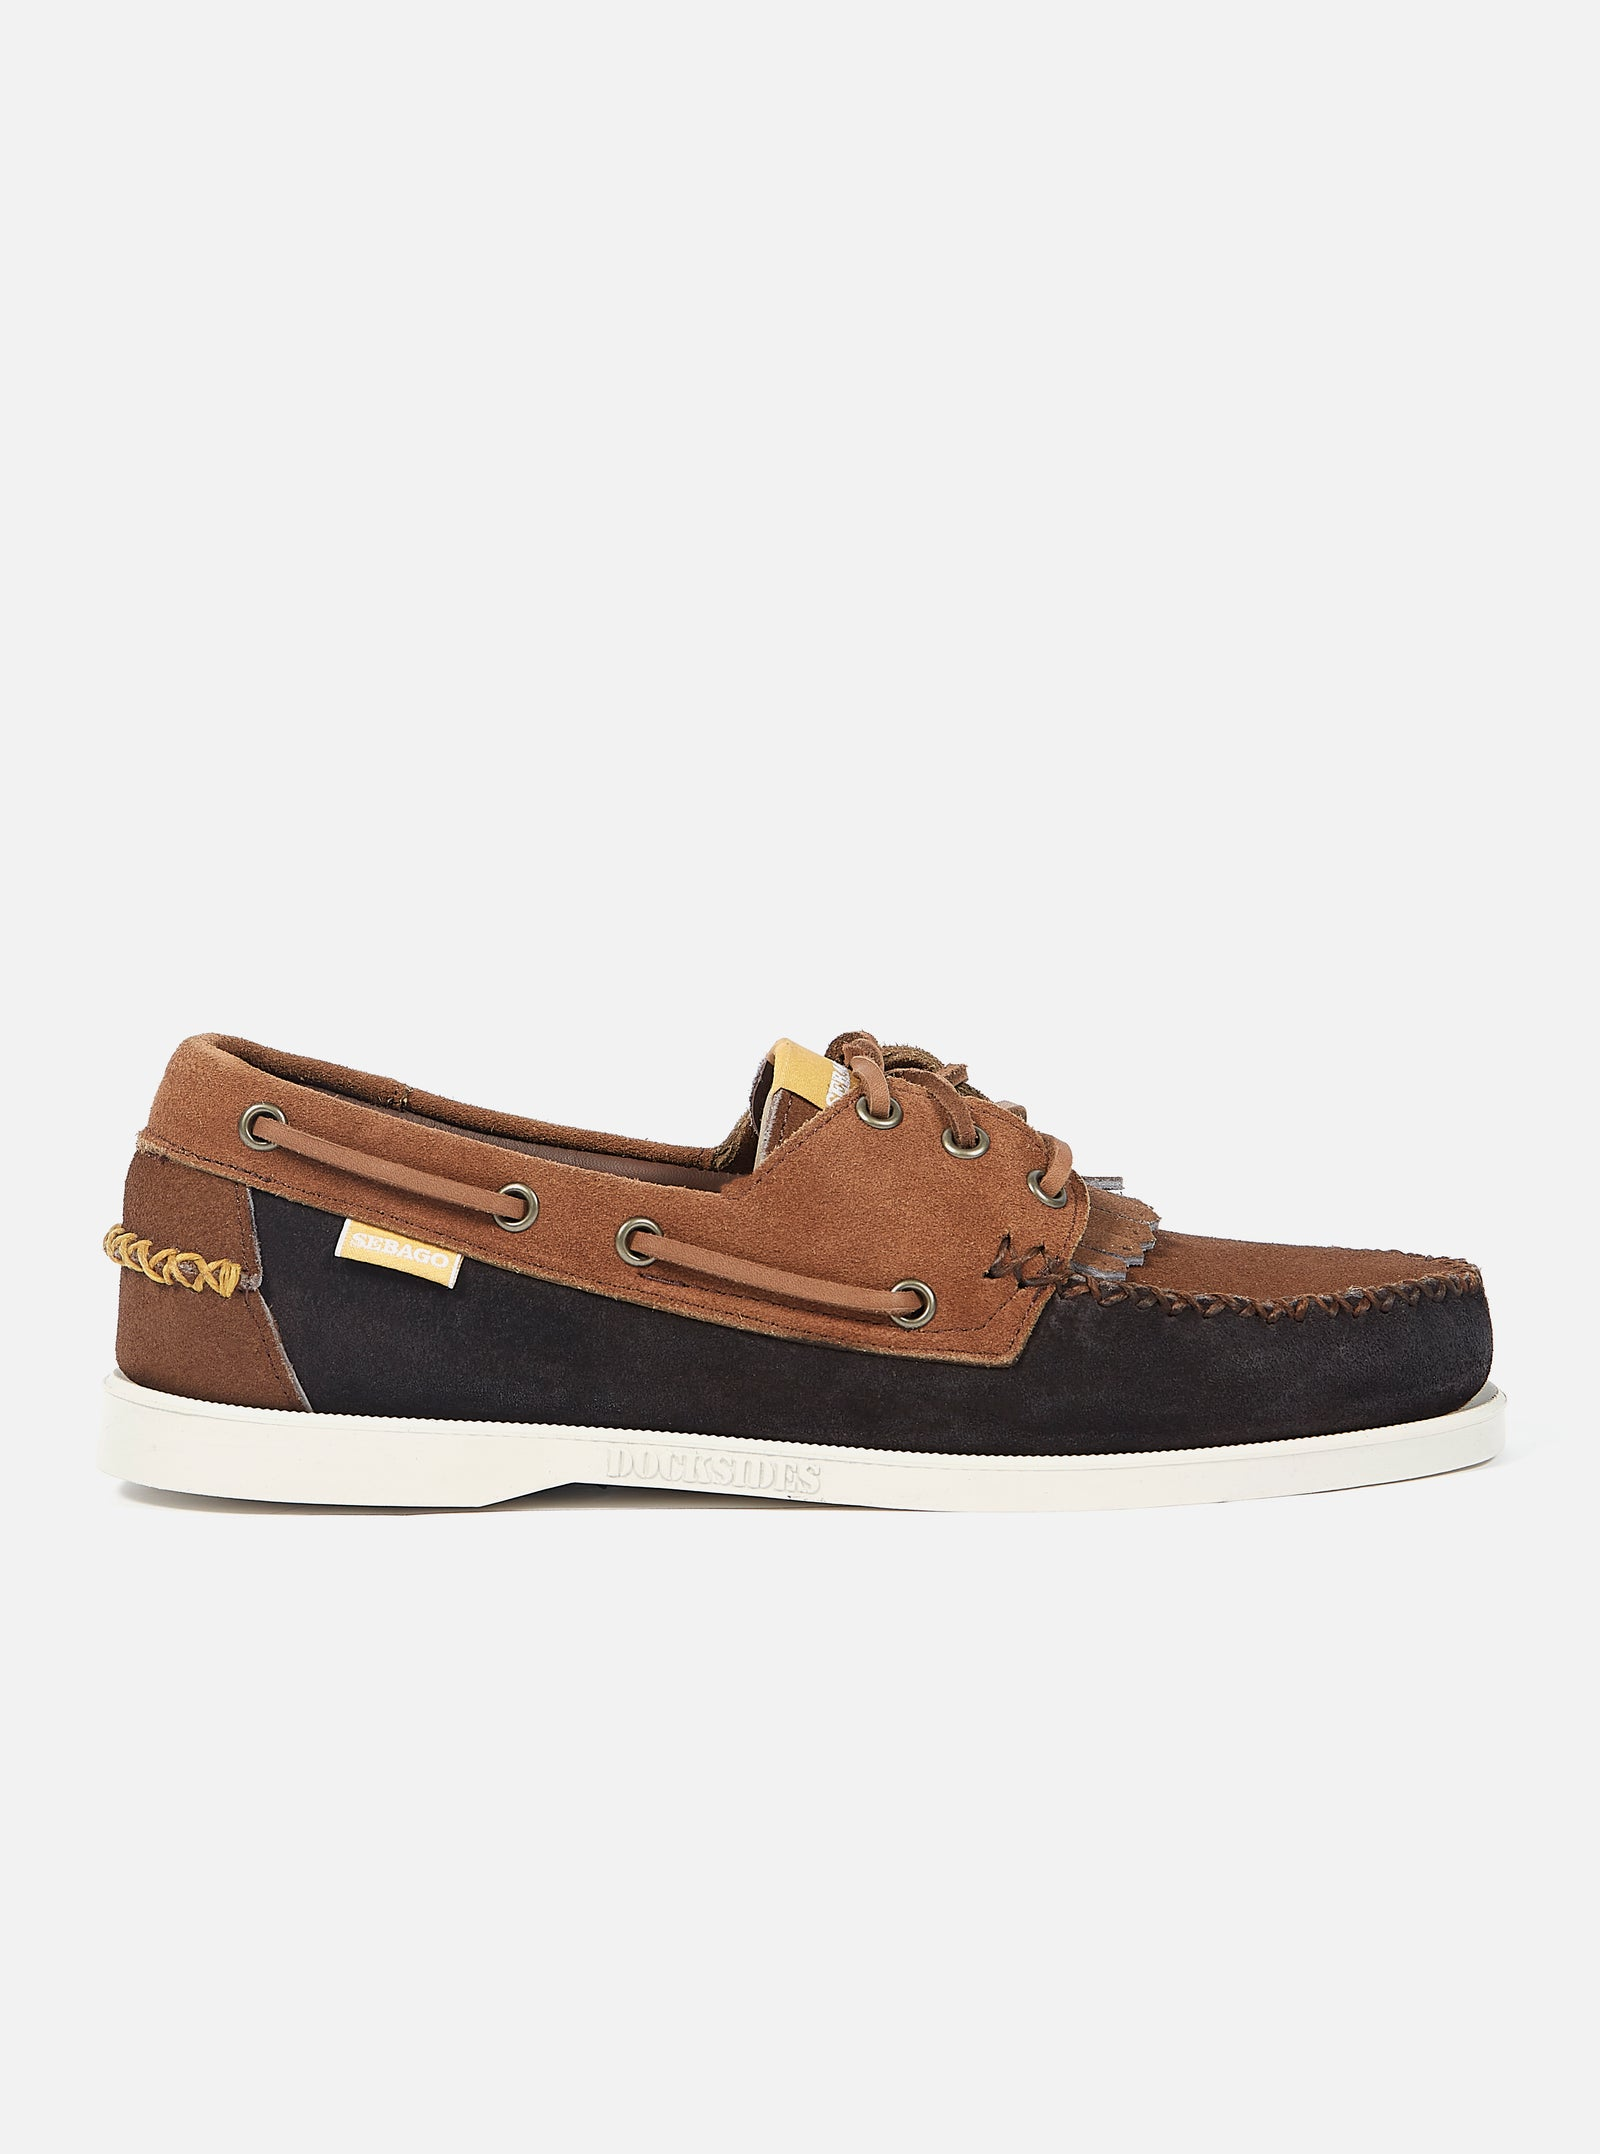 Sebago x Universal Works Portland Multi-Tone in Dark Brown Suede